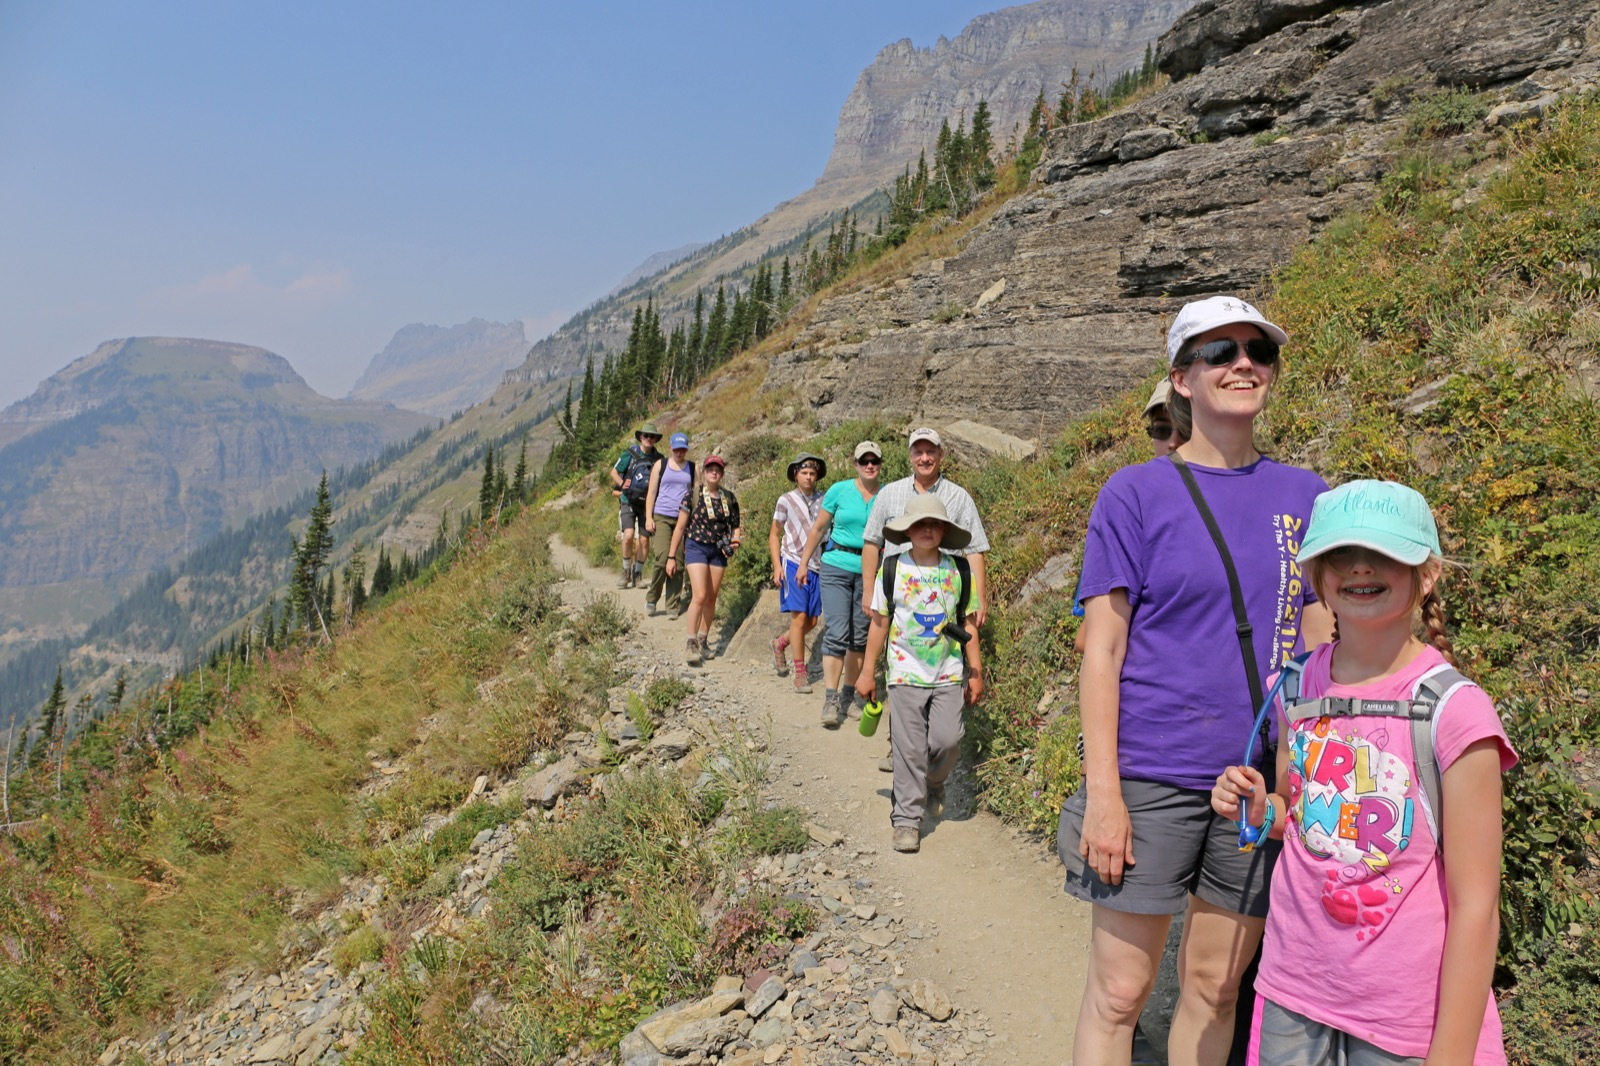 People of all ages hike up a mountain side in Glacier National Park.